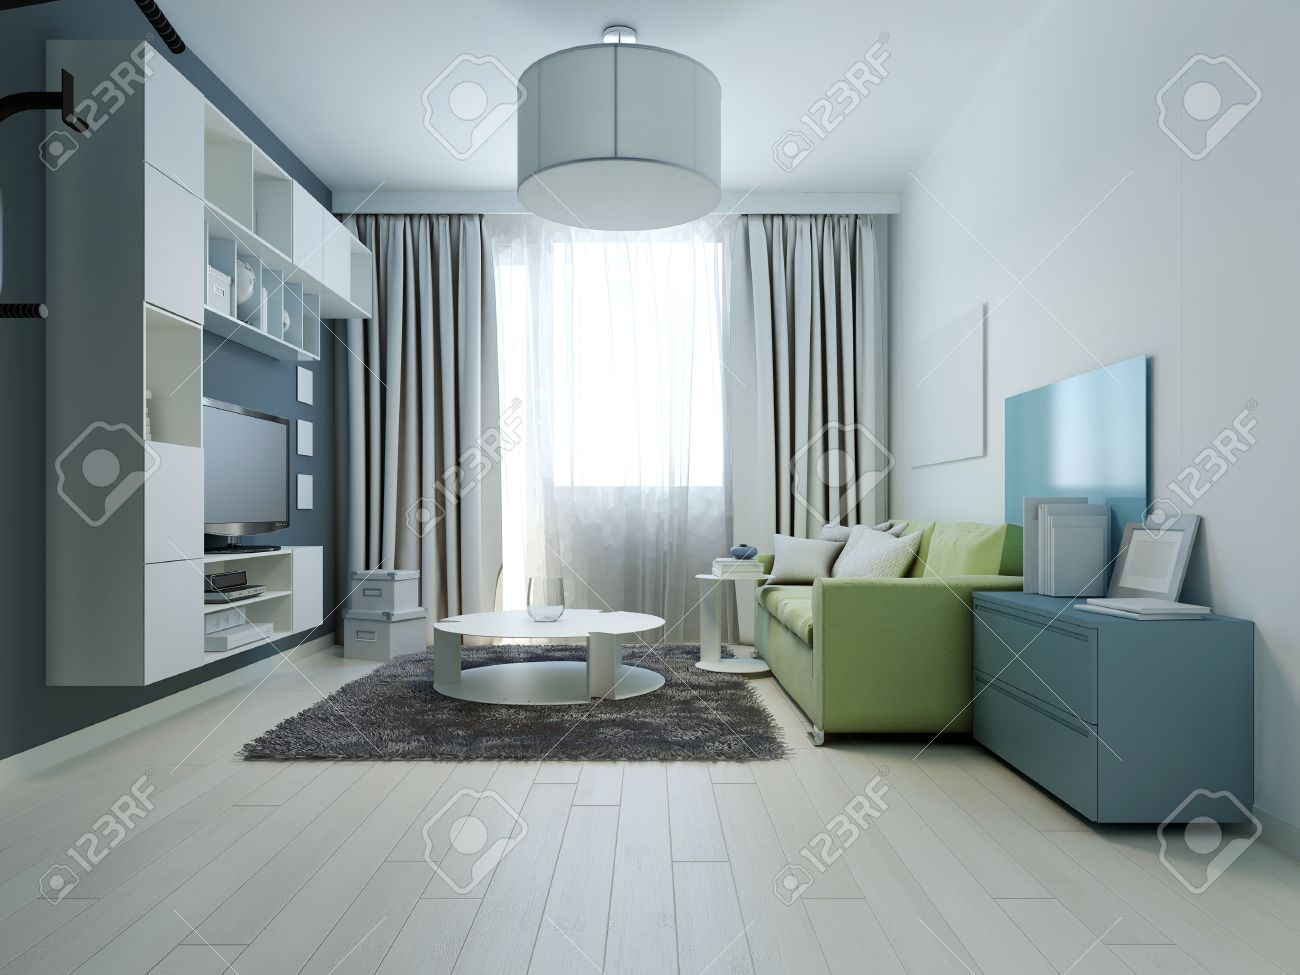 Design Of Bright Colored Living Room Kitsch Style. Room With Wall  Furniture. Parquet Made